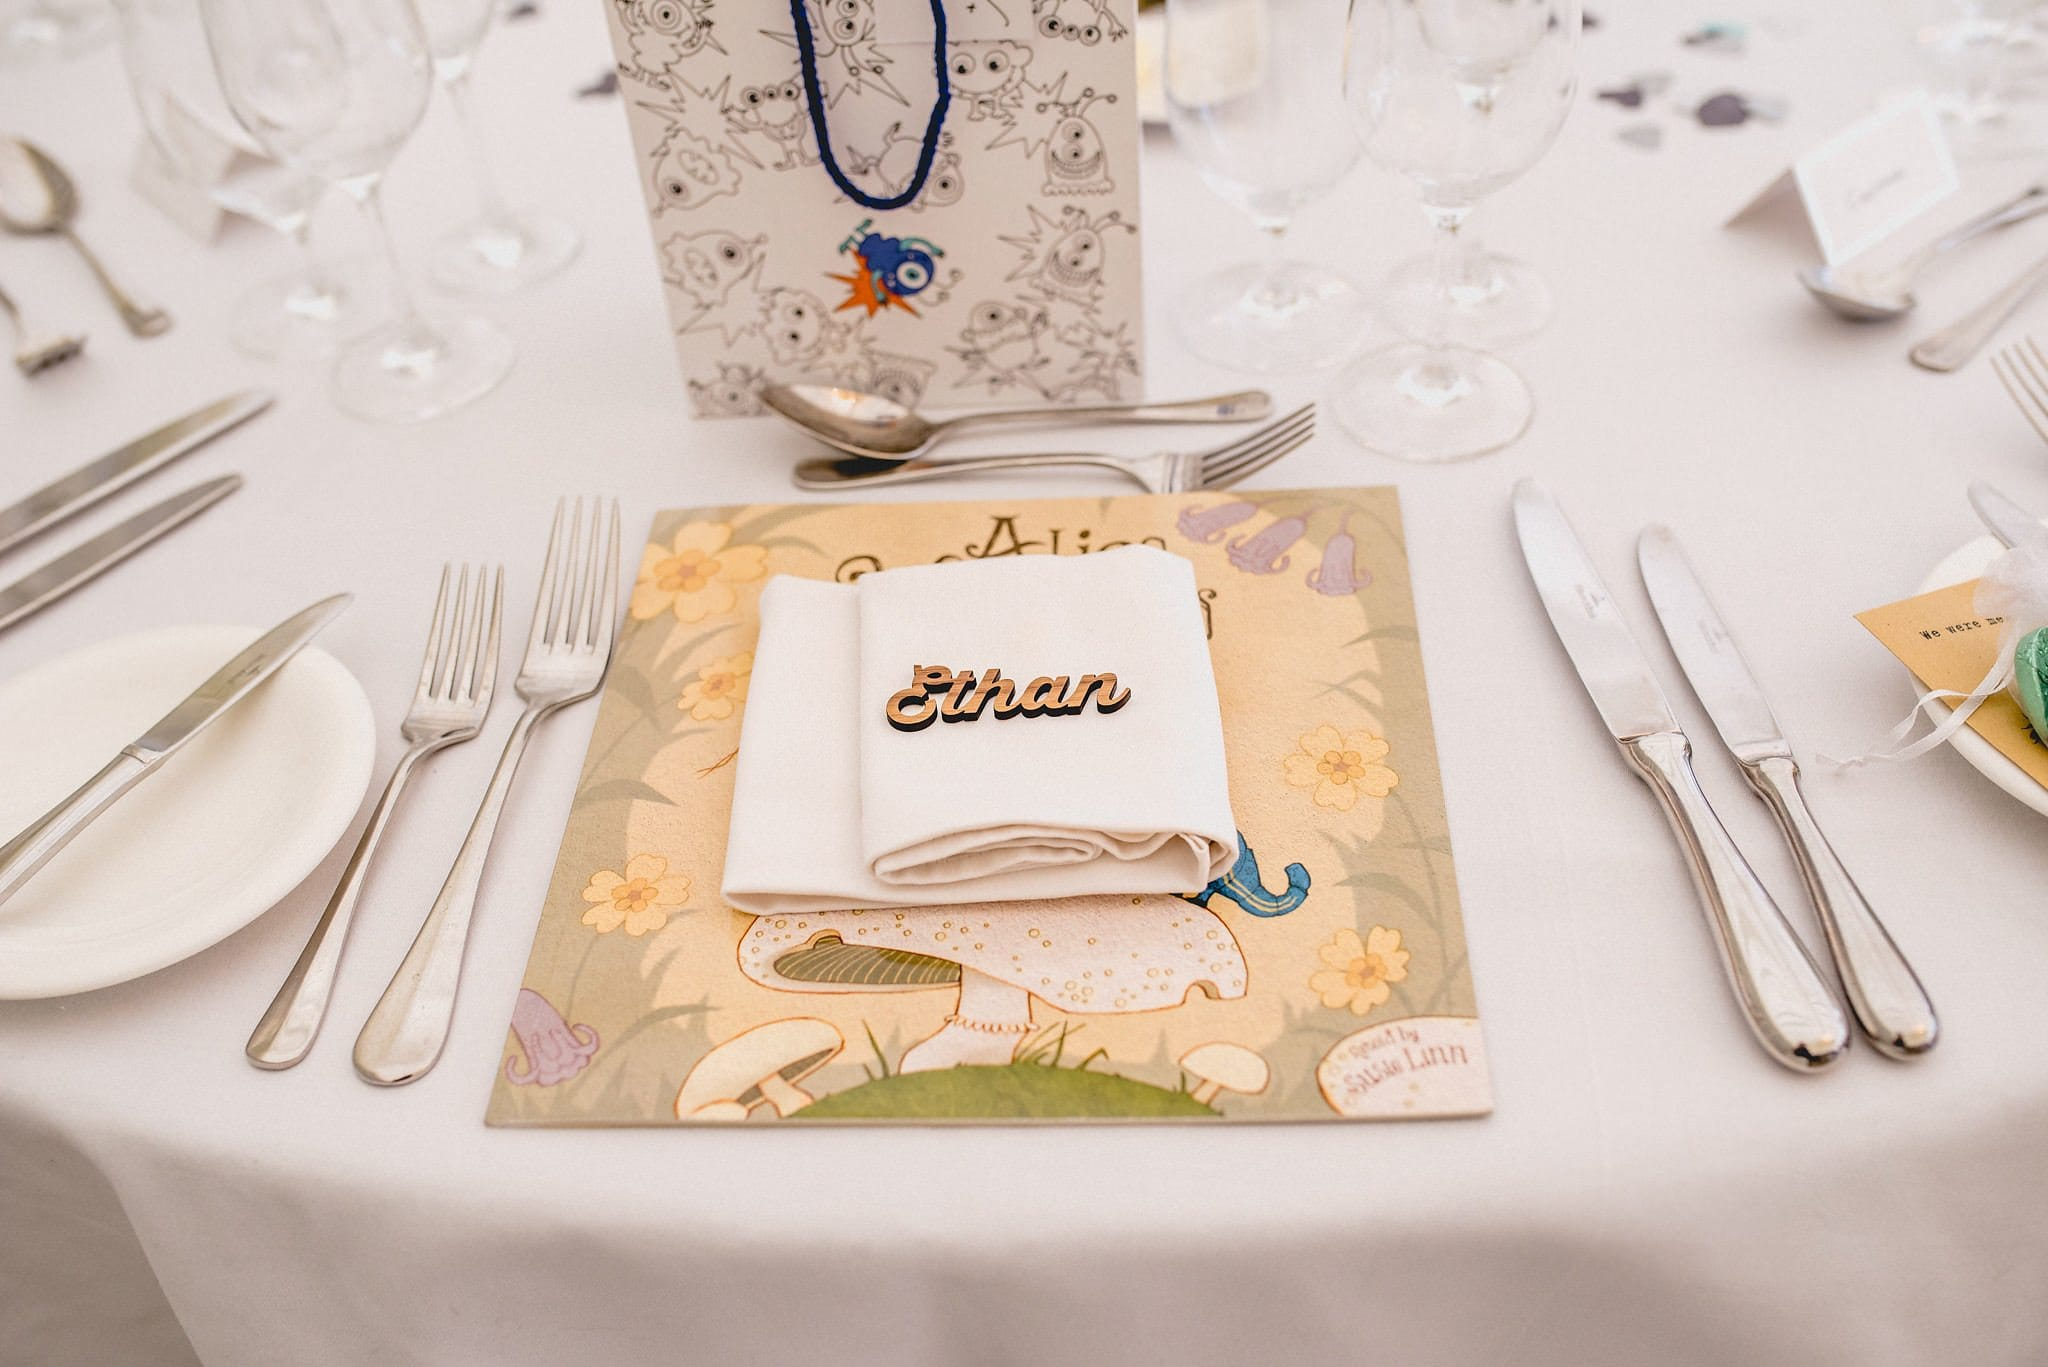 A close up of one of the place settings, featuring a gift bag and a laser cut wooden place name